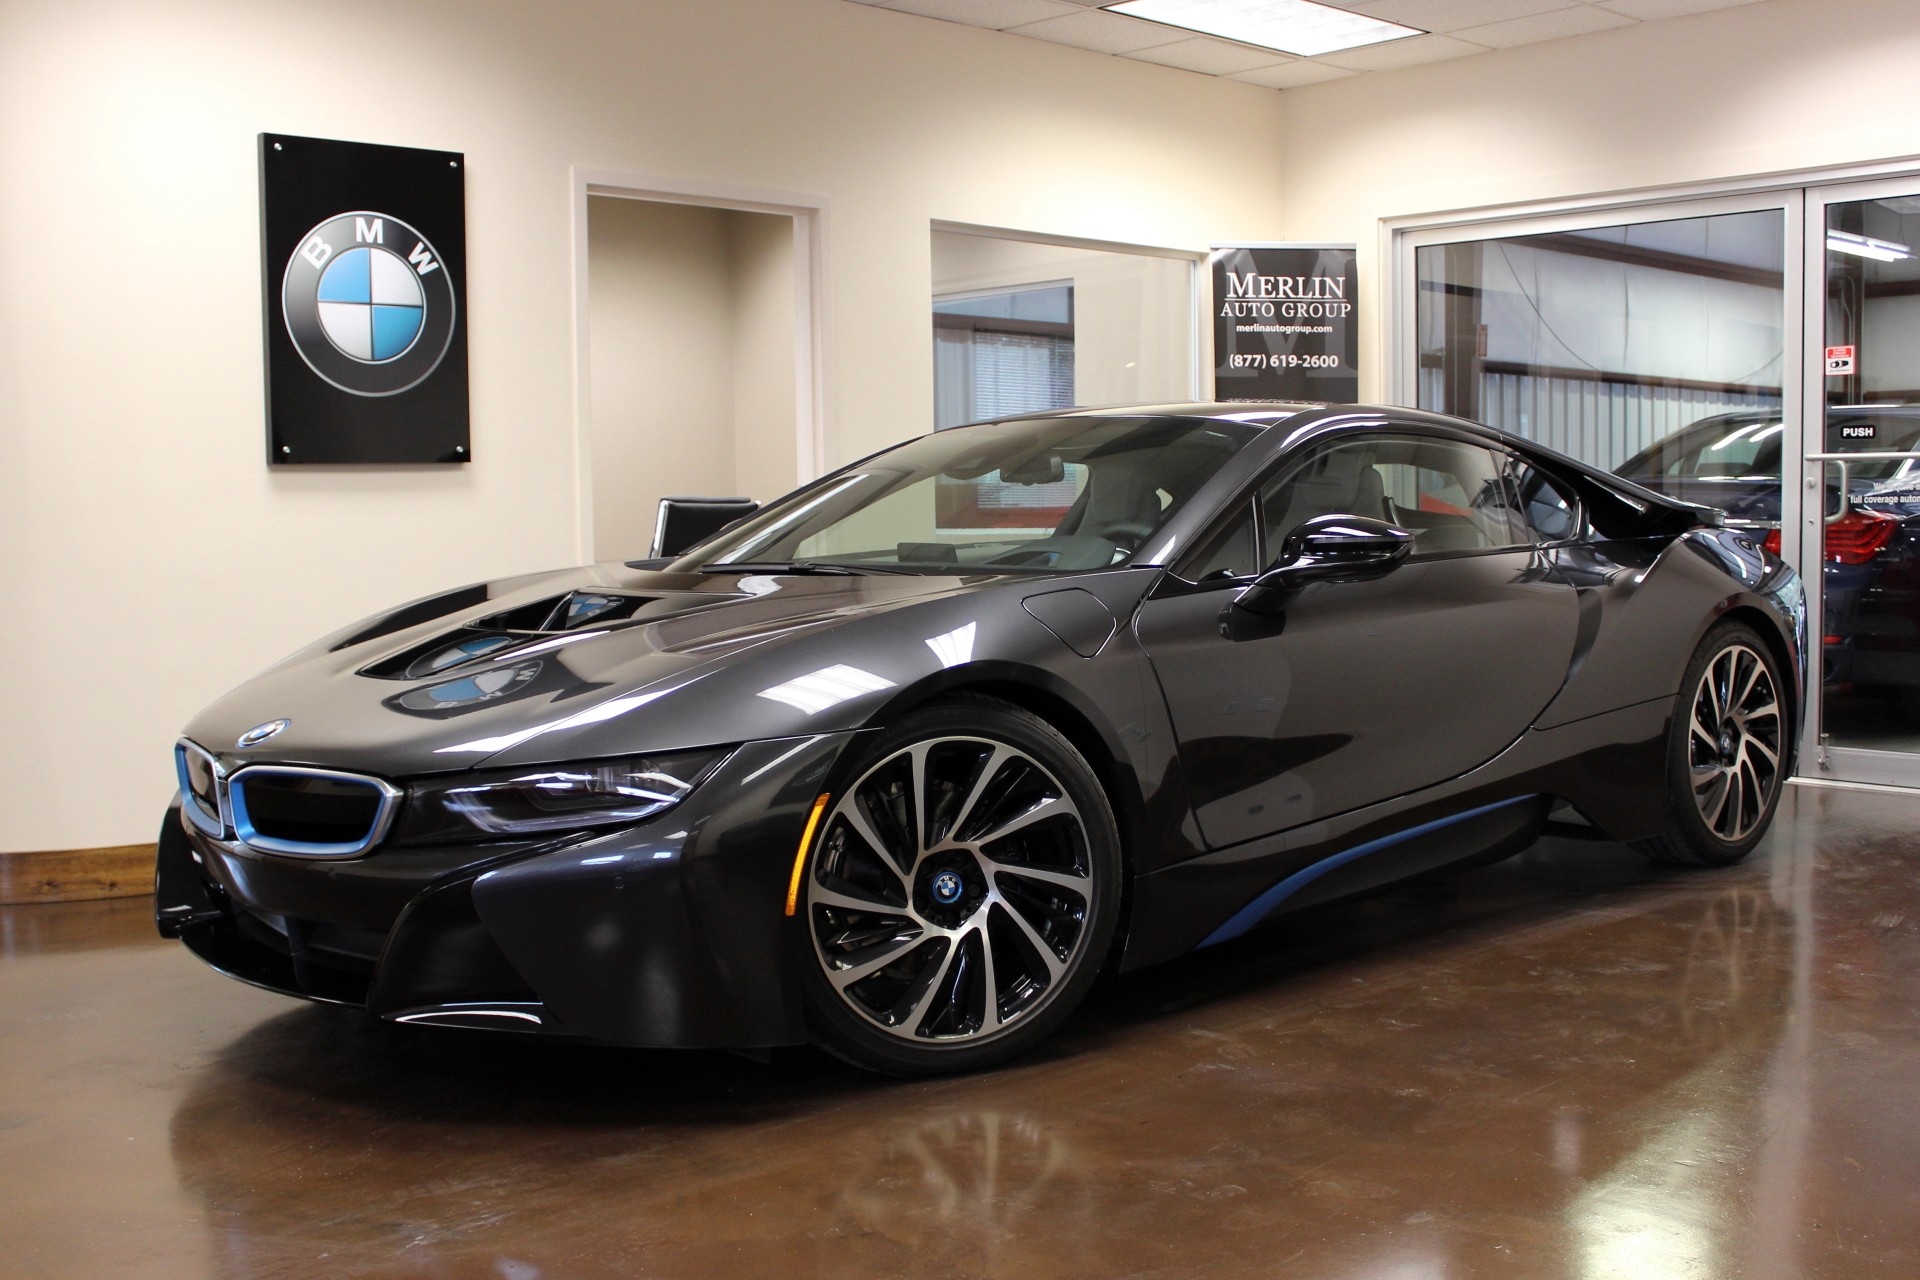 used 2015 bmw i8 stock pl05 ultra luxury car from merlin auto group. Black Bedroom Furniture Sets. Home Design Ideas